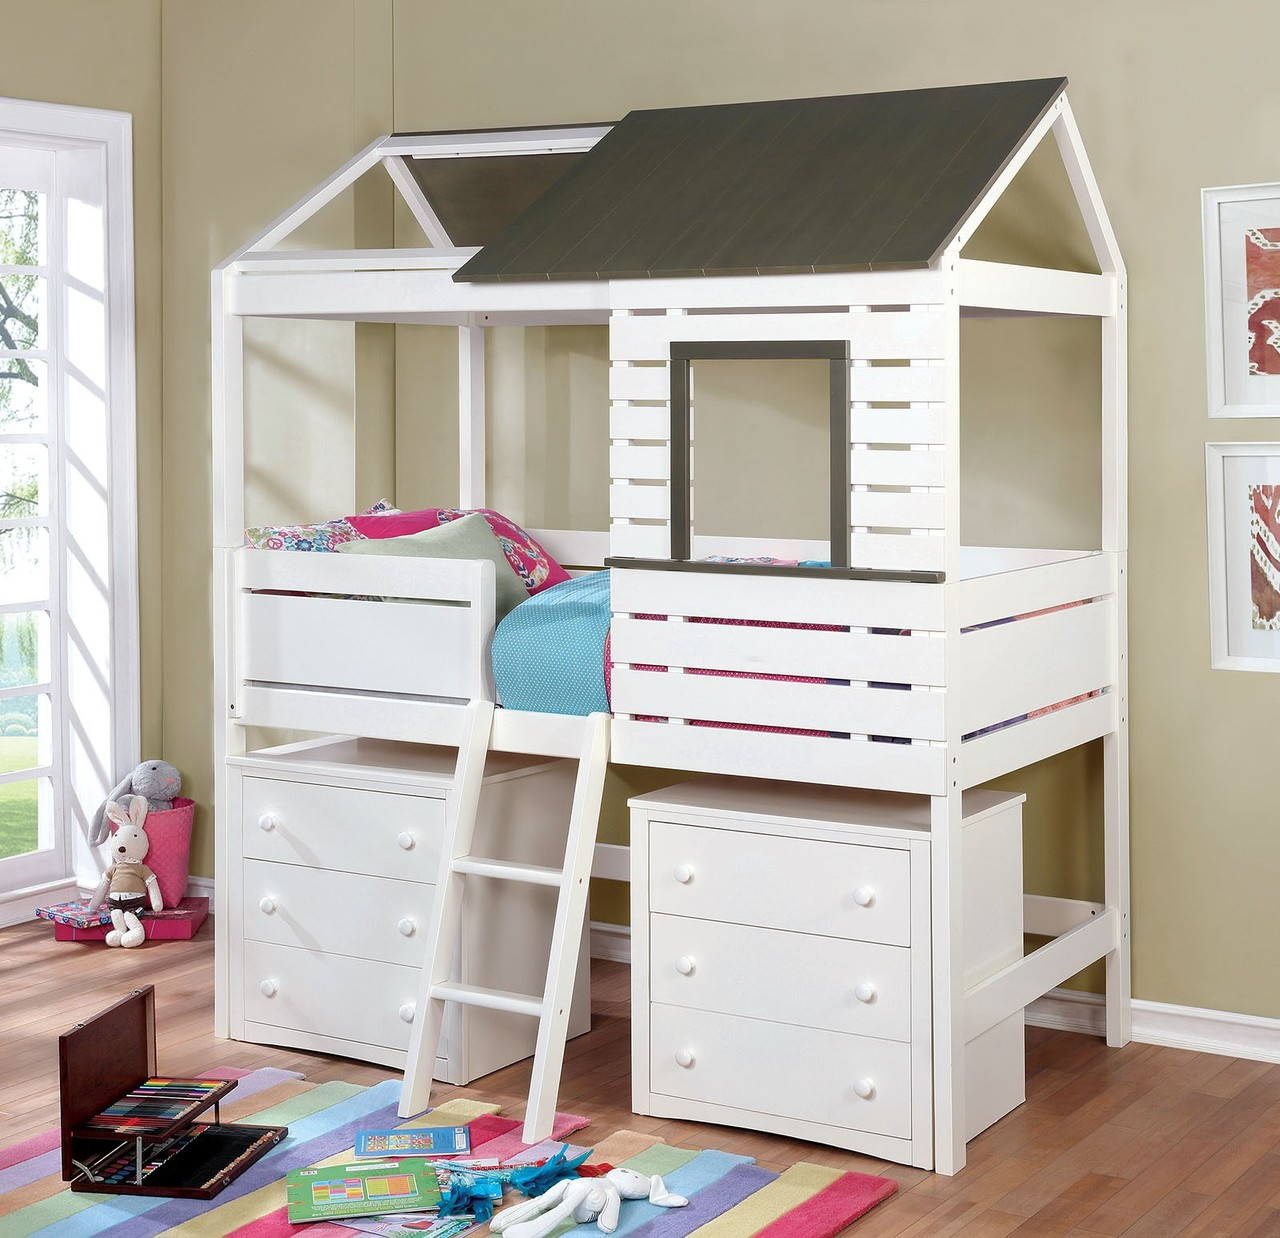 Furniture Of America CM7137 White Gray House Bed | FAREM Lofted House Bed